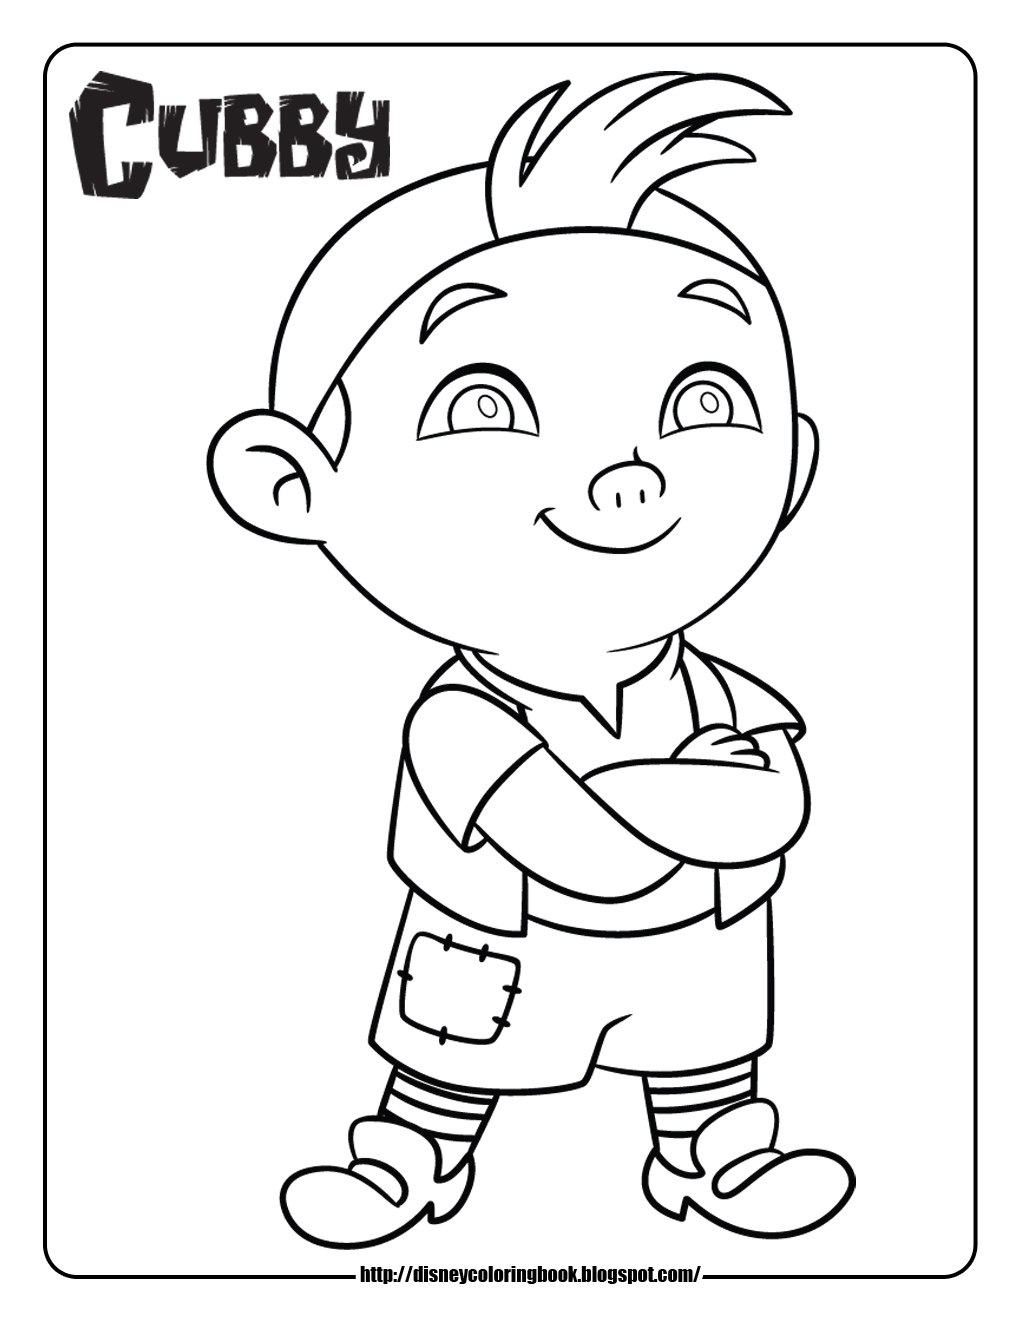 Disney Junior Coloring Pages Jake : Disney coloring pages and sheets for kids jake the